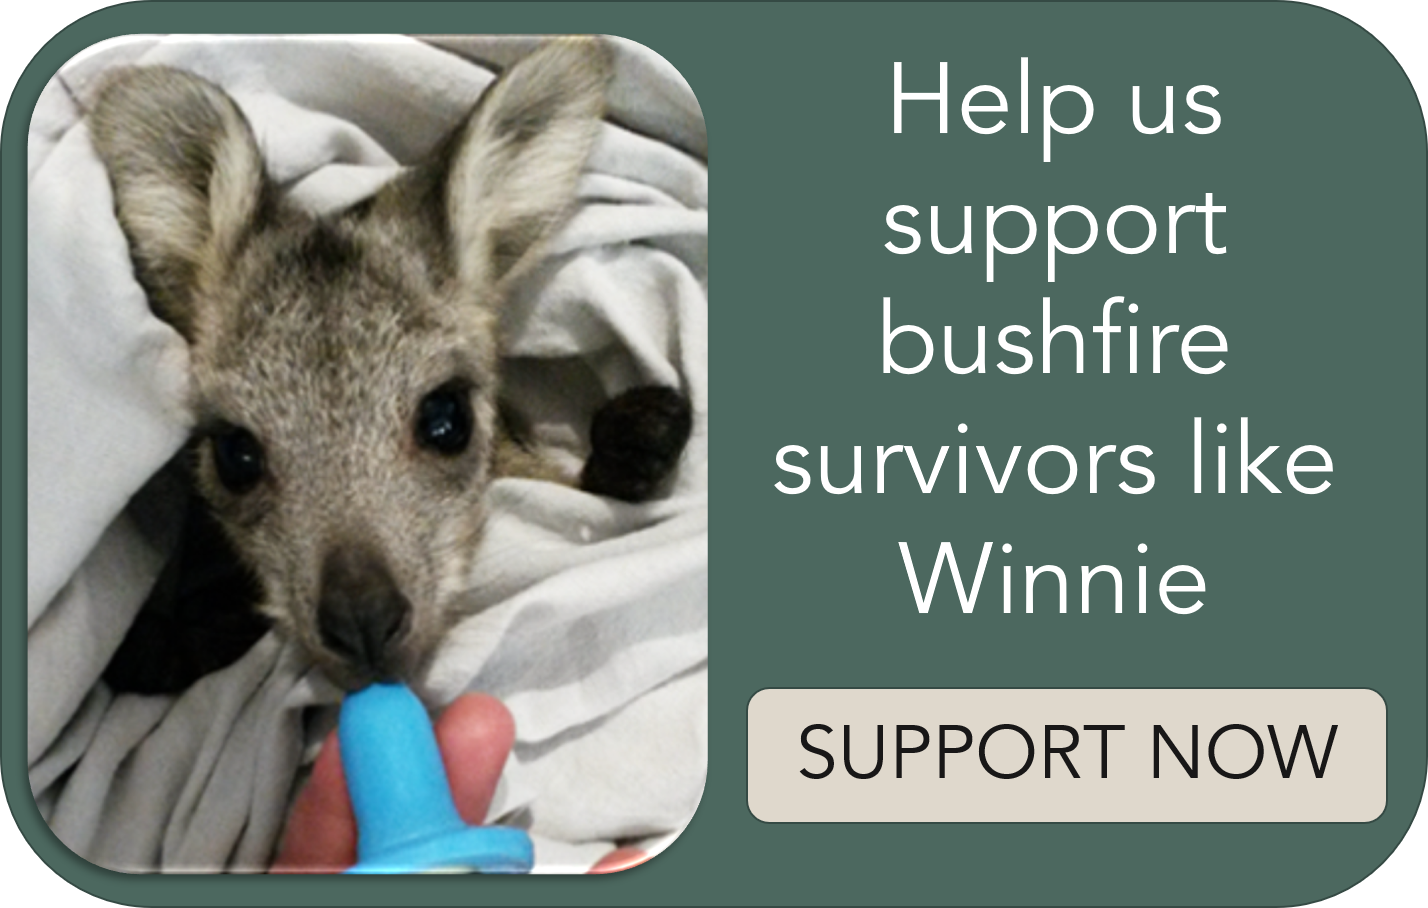 Winnie_bushfire_Support button